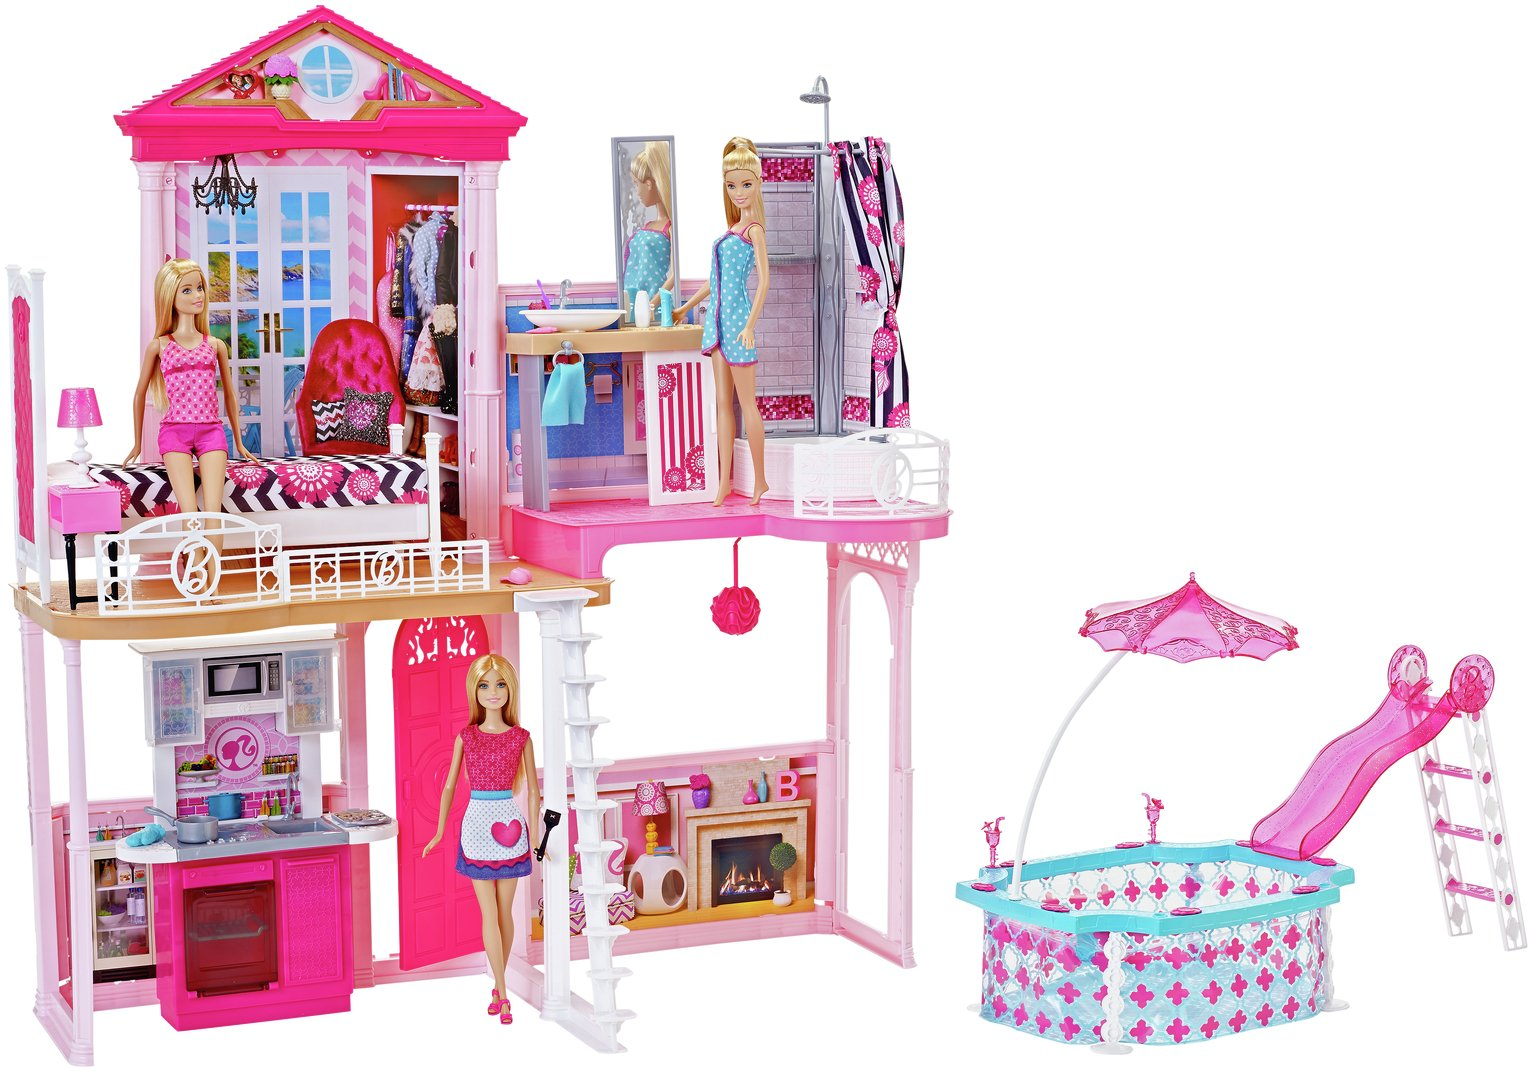 Buy Complete Barbie Home Set With 3 Dolls And Pool Dolls Houses